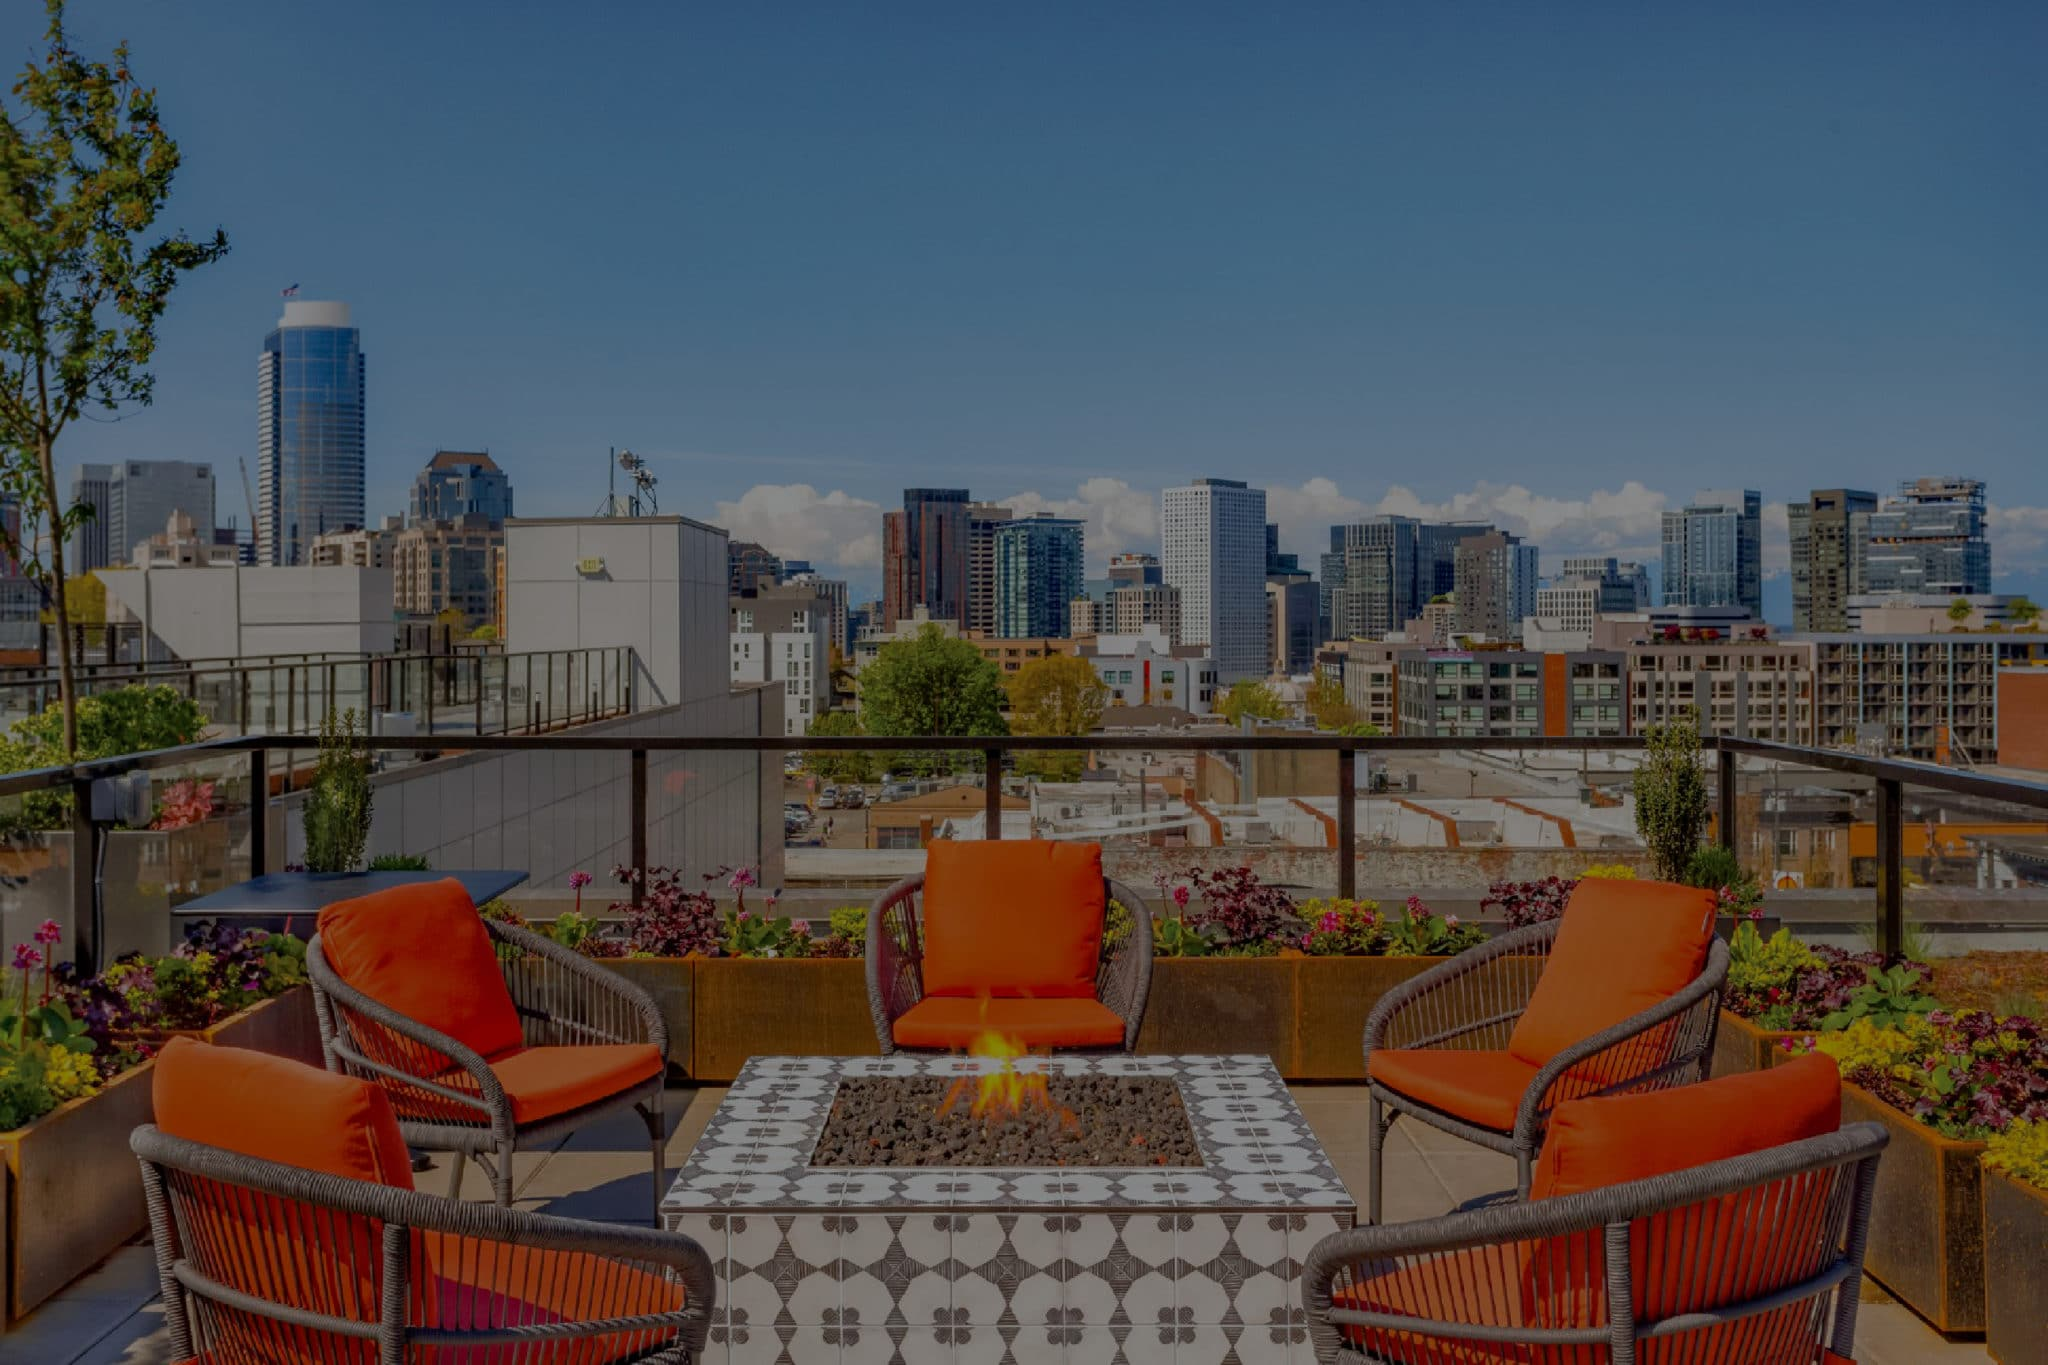 Rooftop Patio with a fireplace and bright orange chairs.